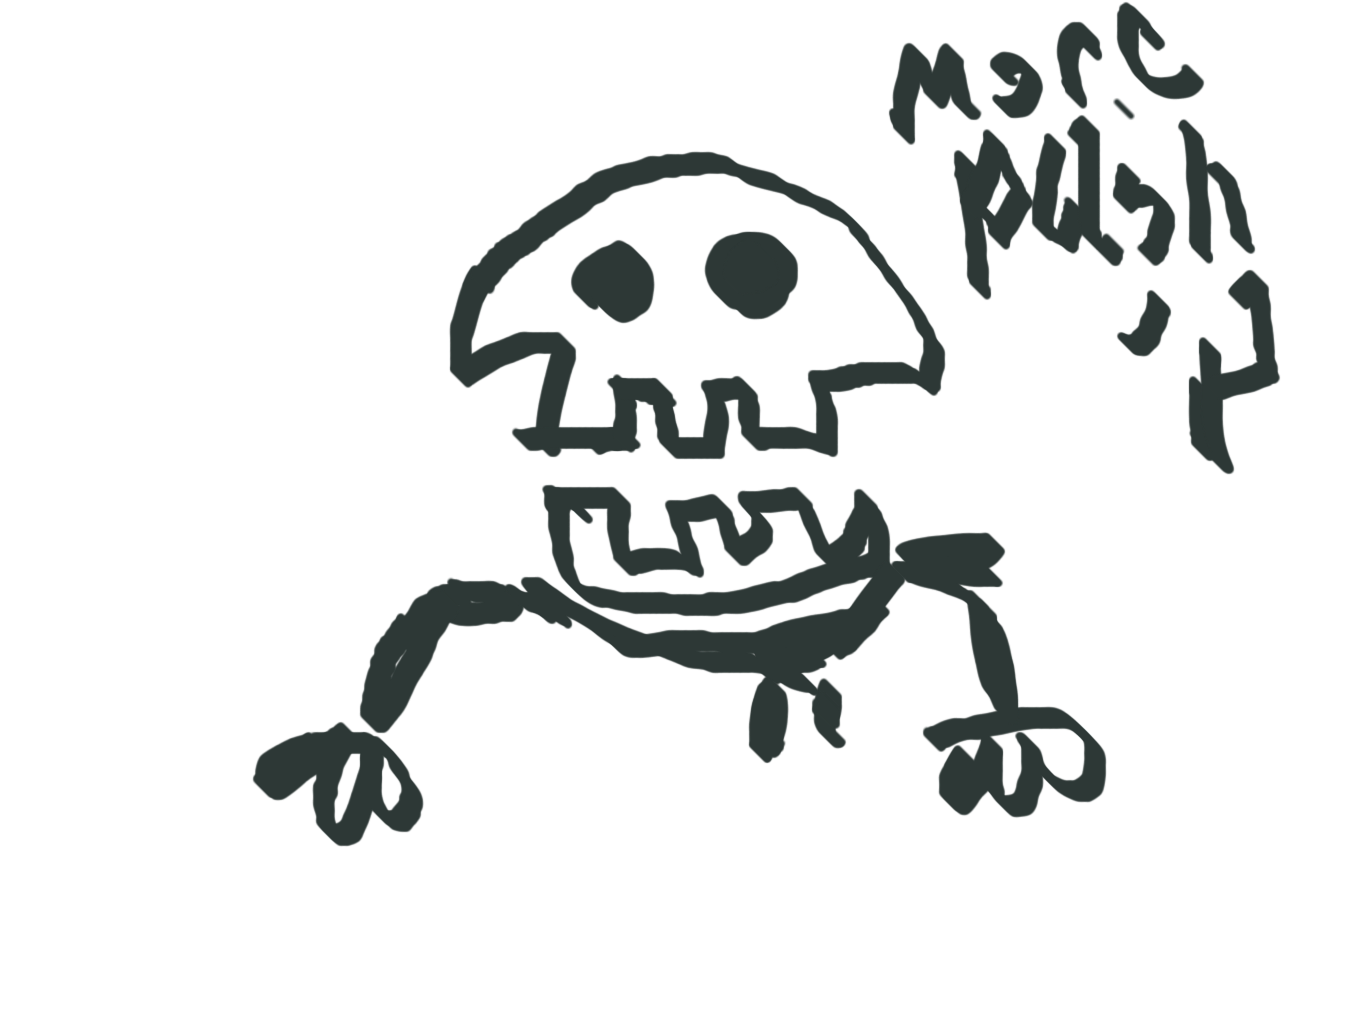 clipart library download Forum draw a scary. Drawing something spooky